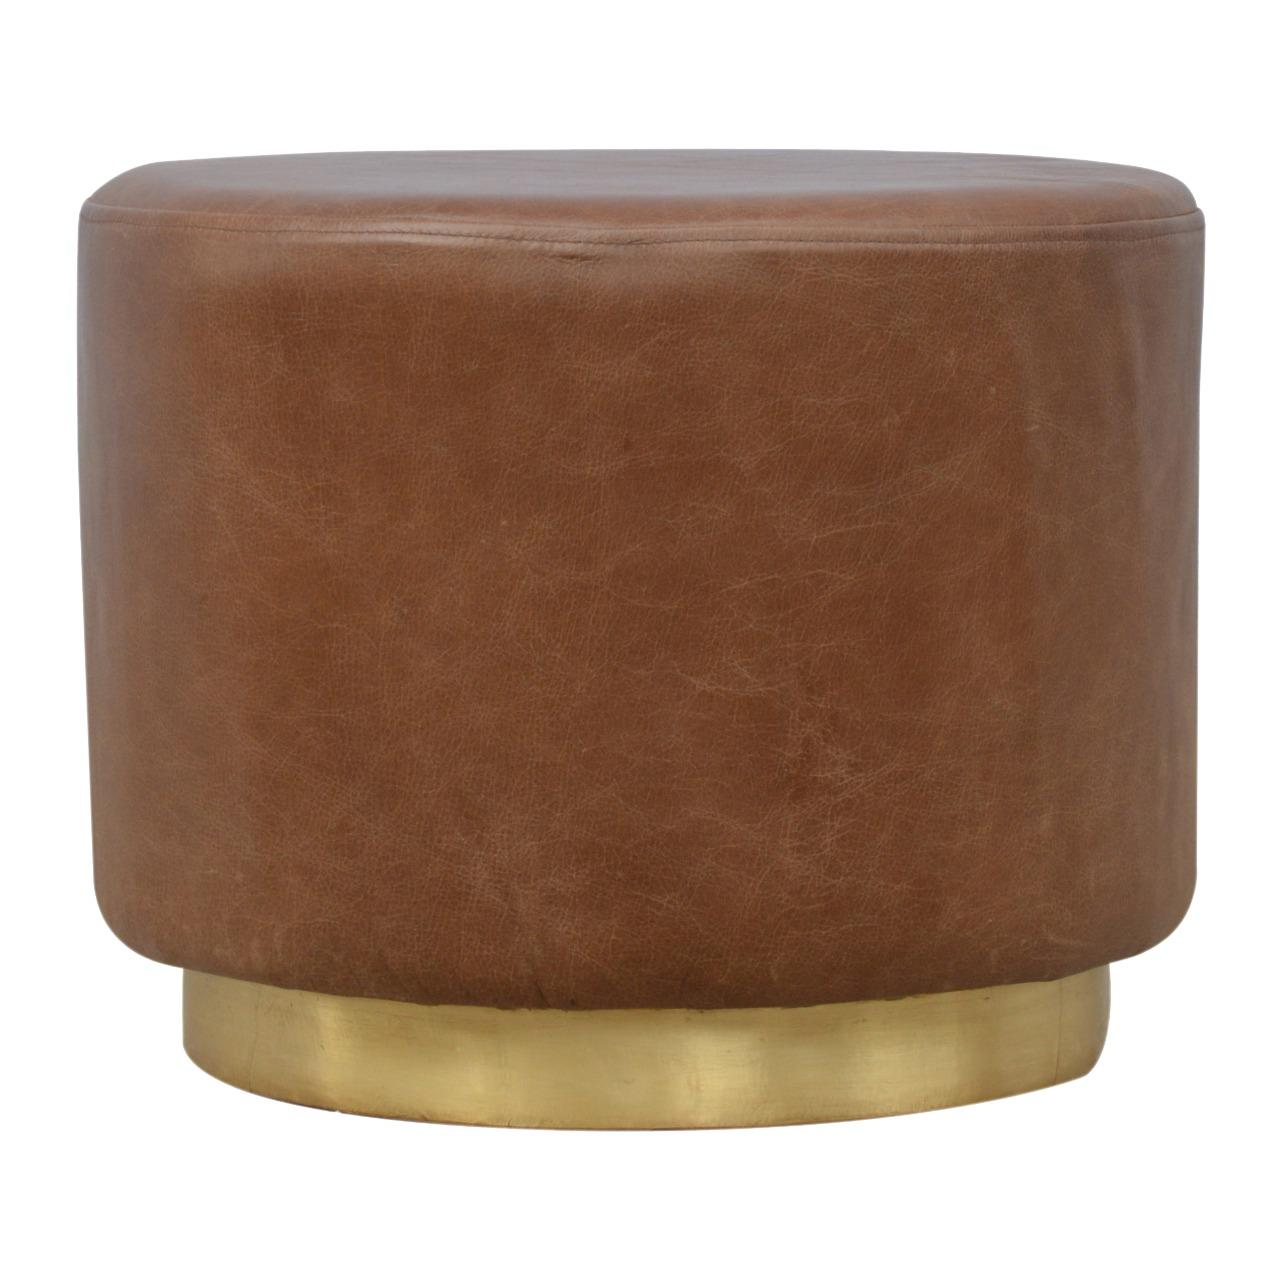 Brown Buffalo Leather Footstool with Gold Base